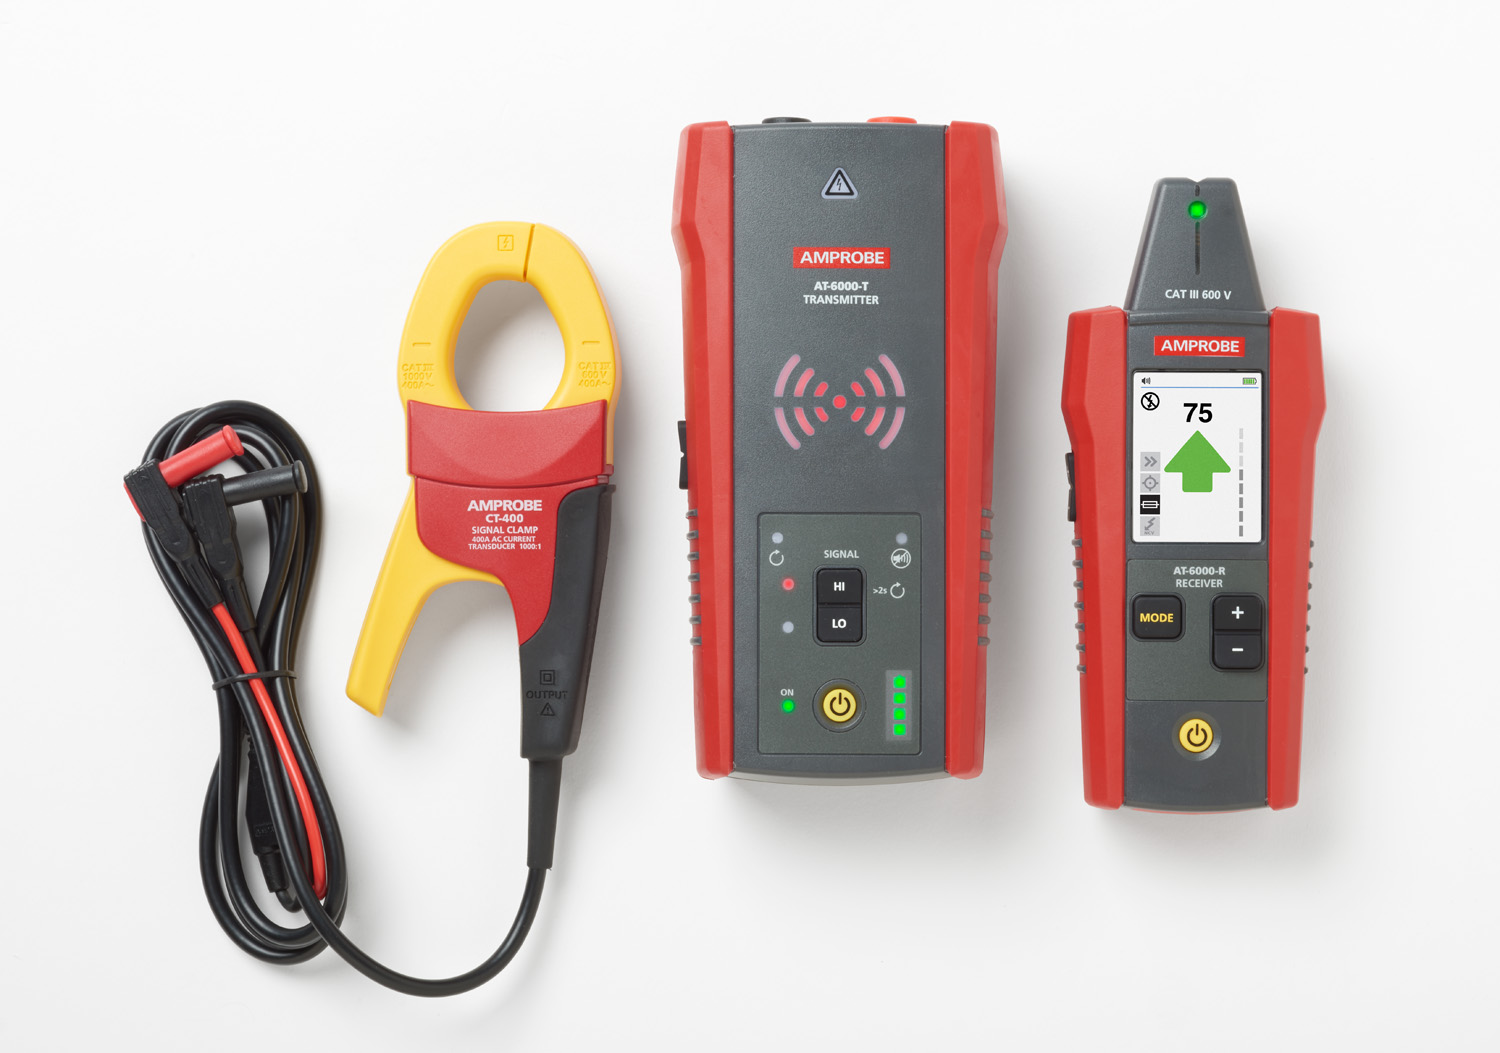 amprobe at 6030 advanced wire tracer for locating electrical circuits and tracing breakers  amprobe at 6030 professional wire